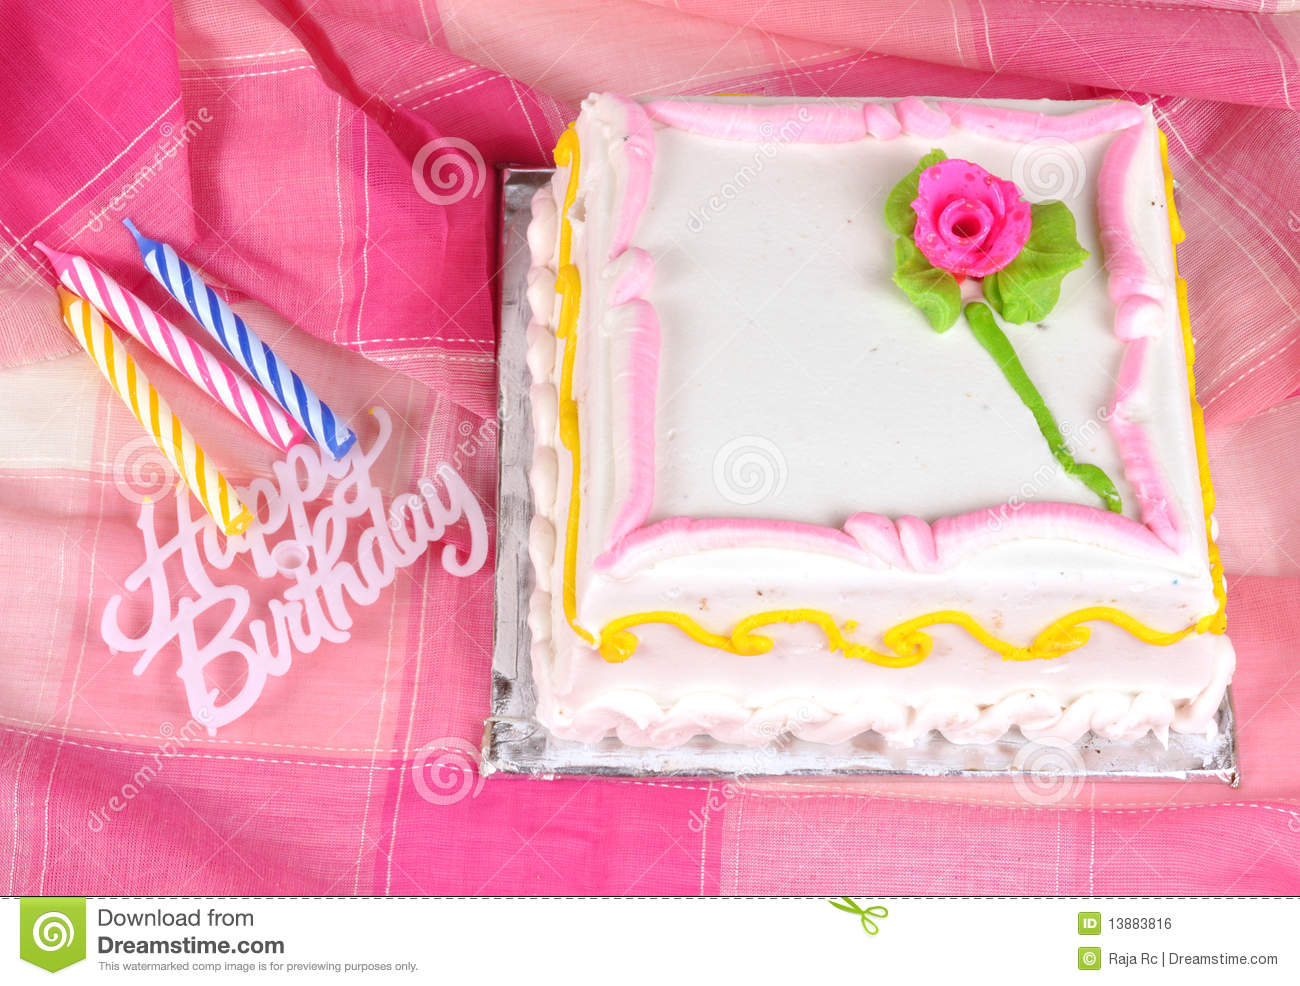 Birthday Cake And Candles Colorful With On Pink Background Royalty Free Stock